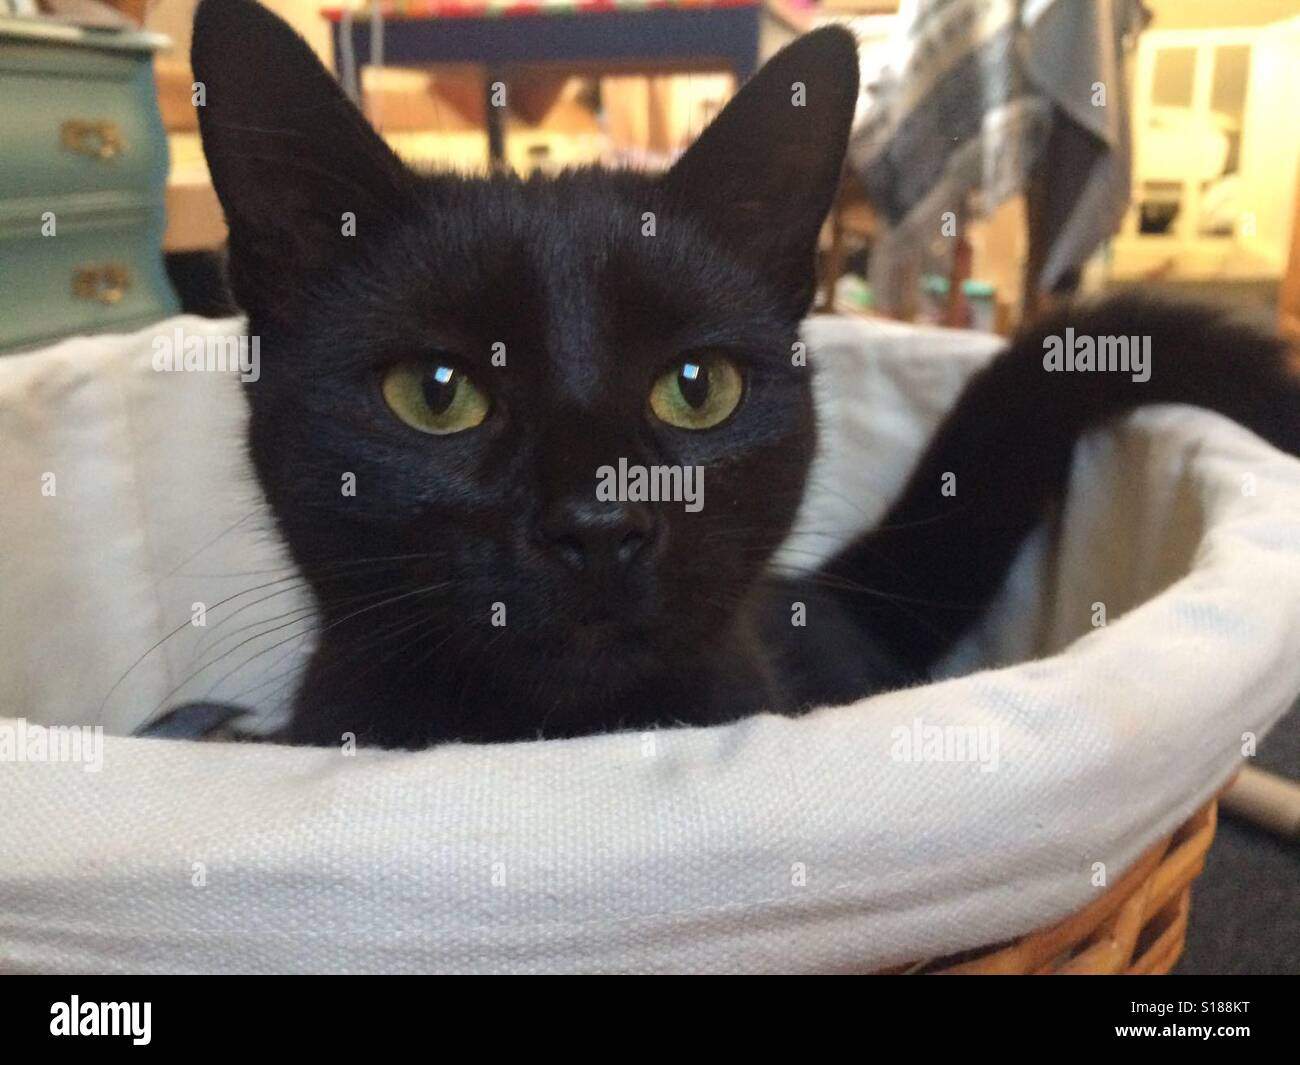 cat in laundry basket stock photos cat in laundry basket stock